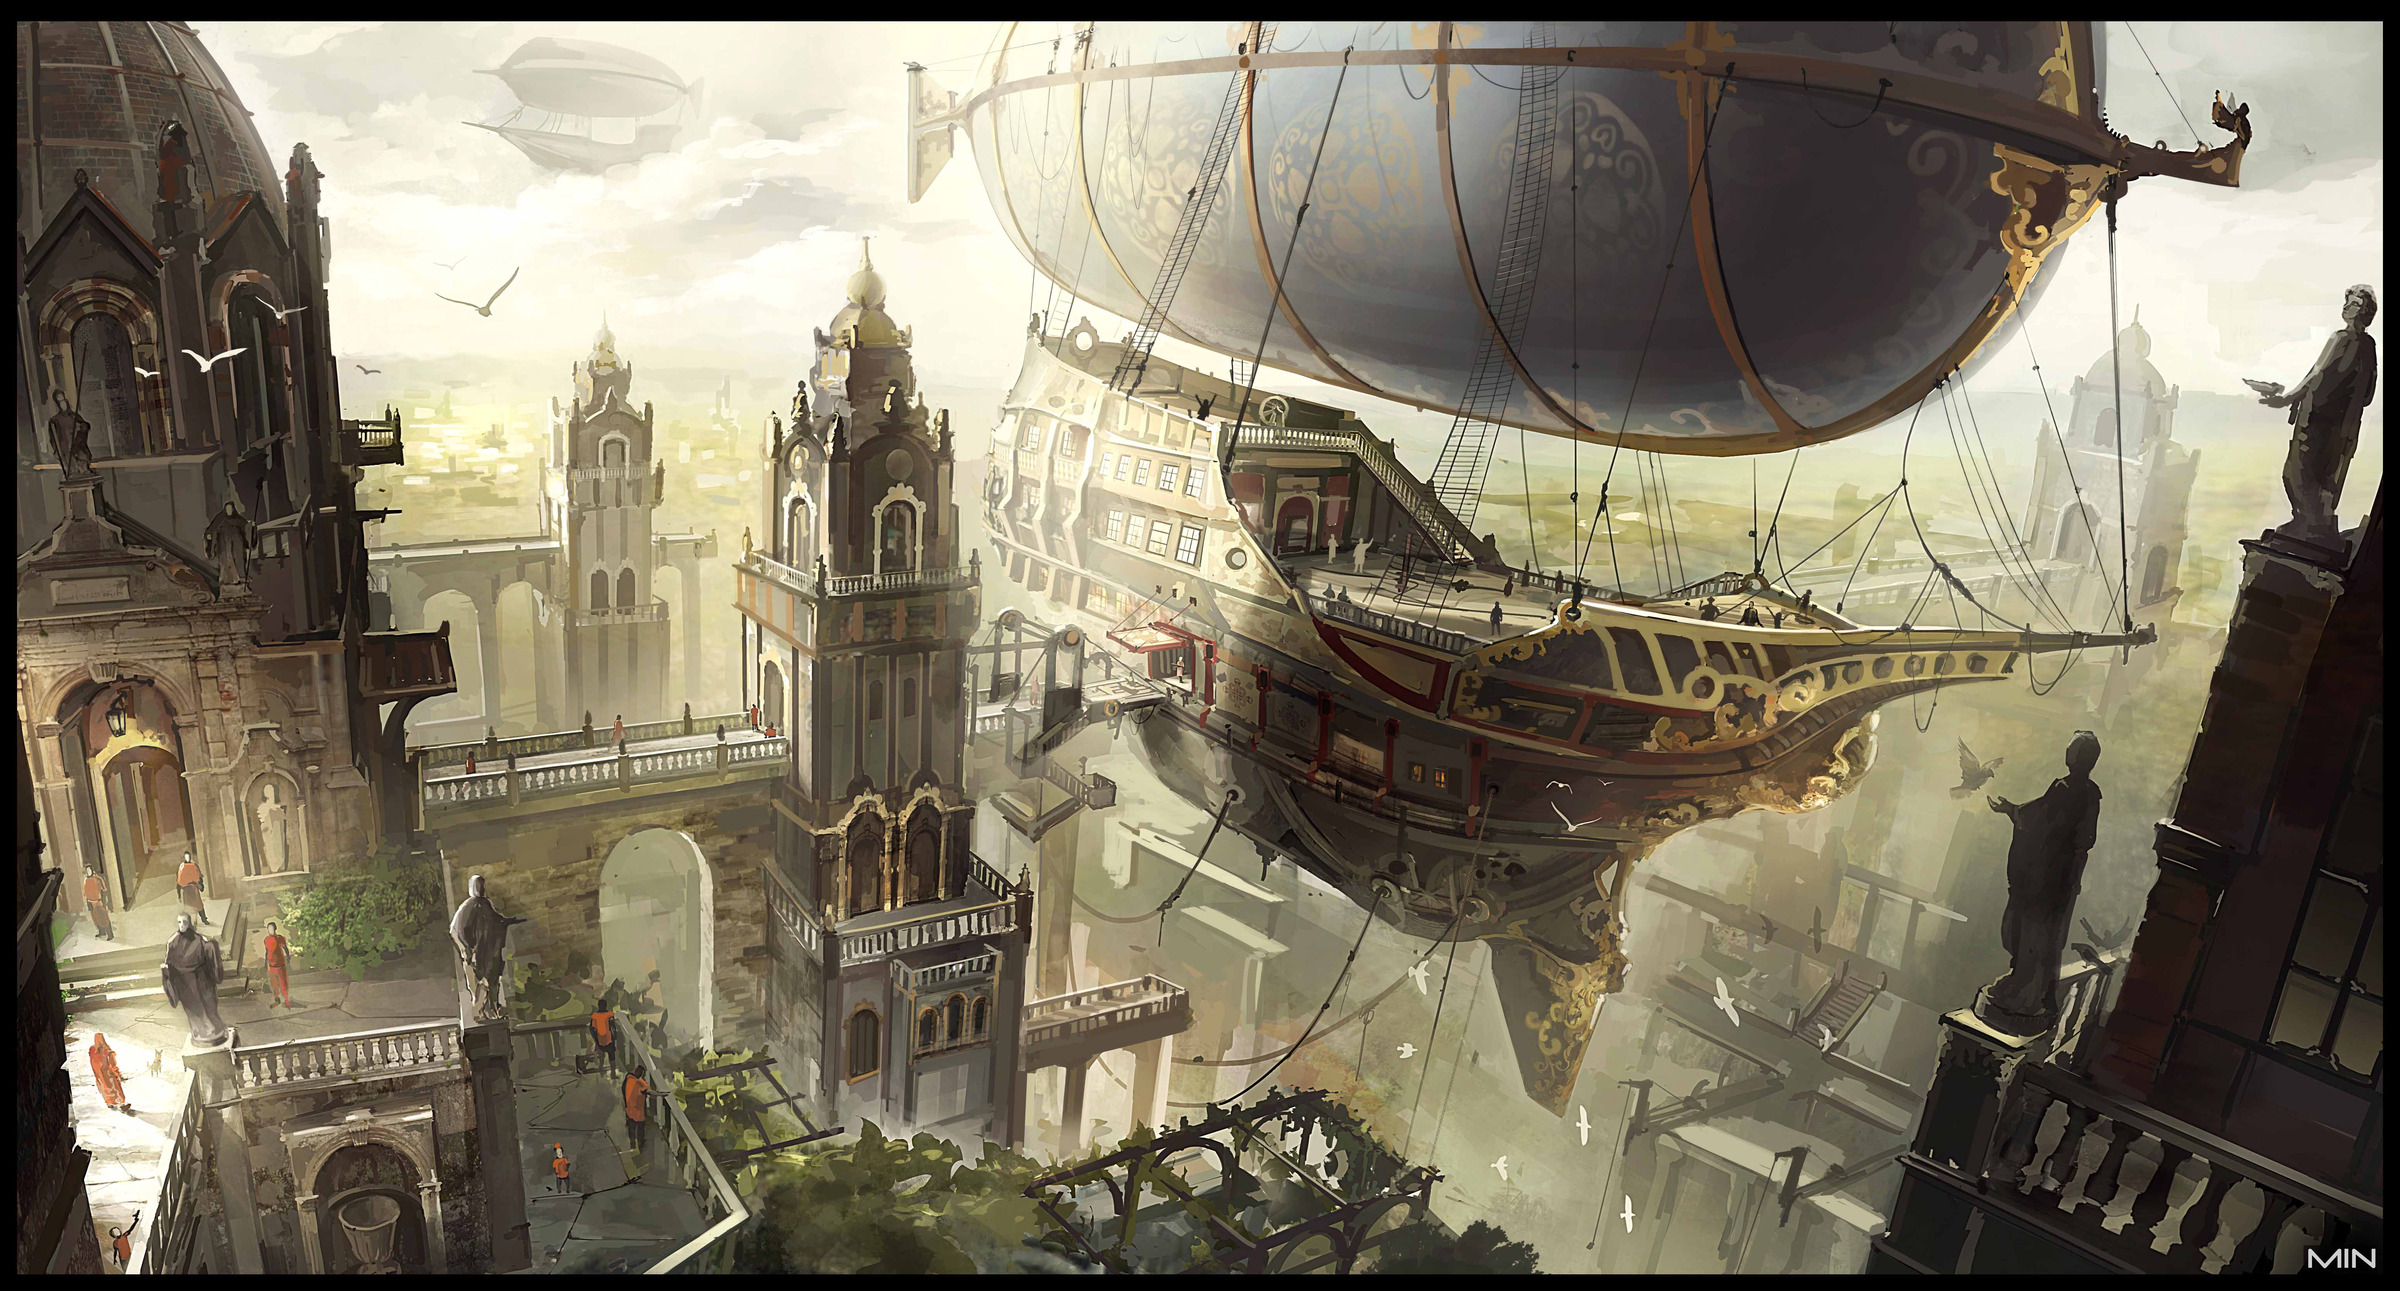 Airship in dock alexandria